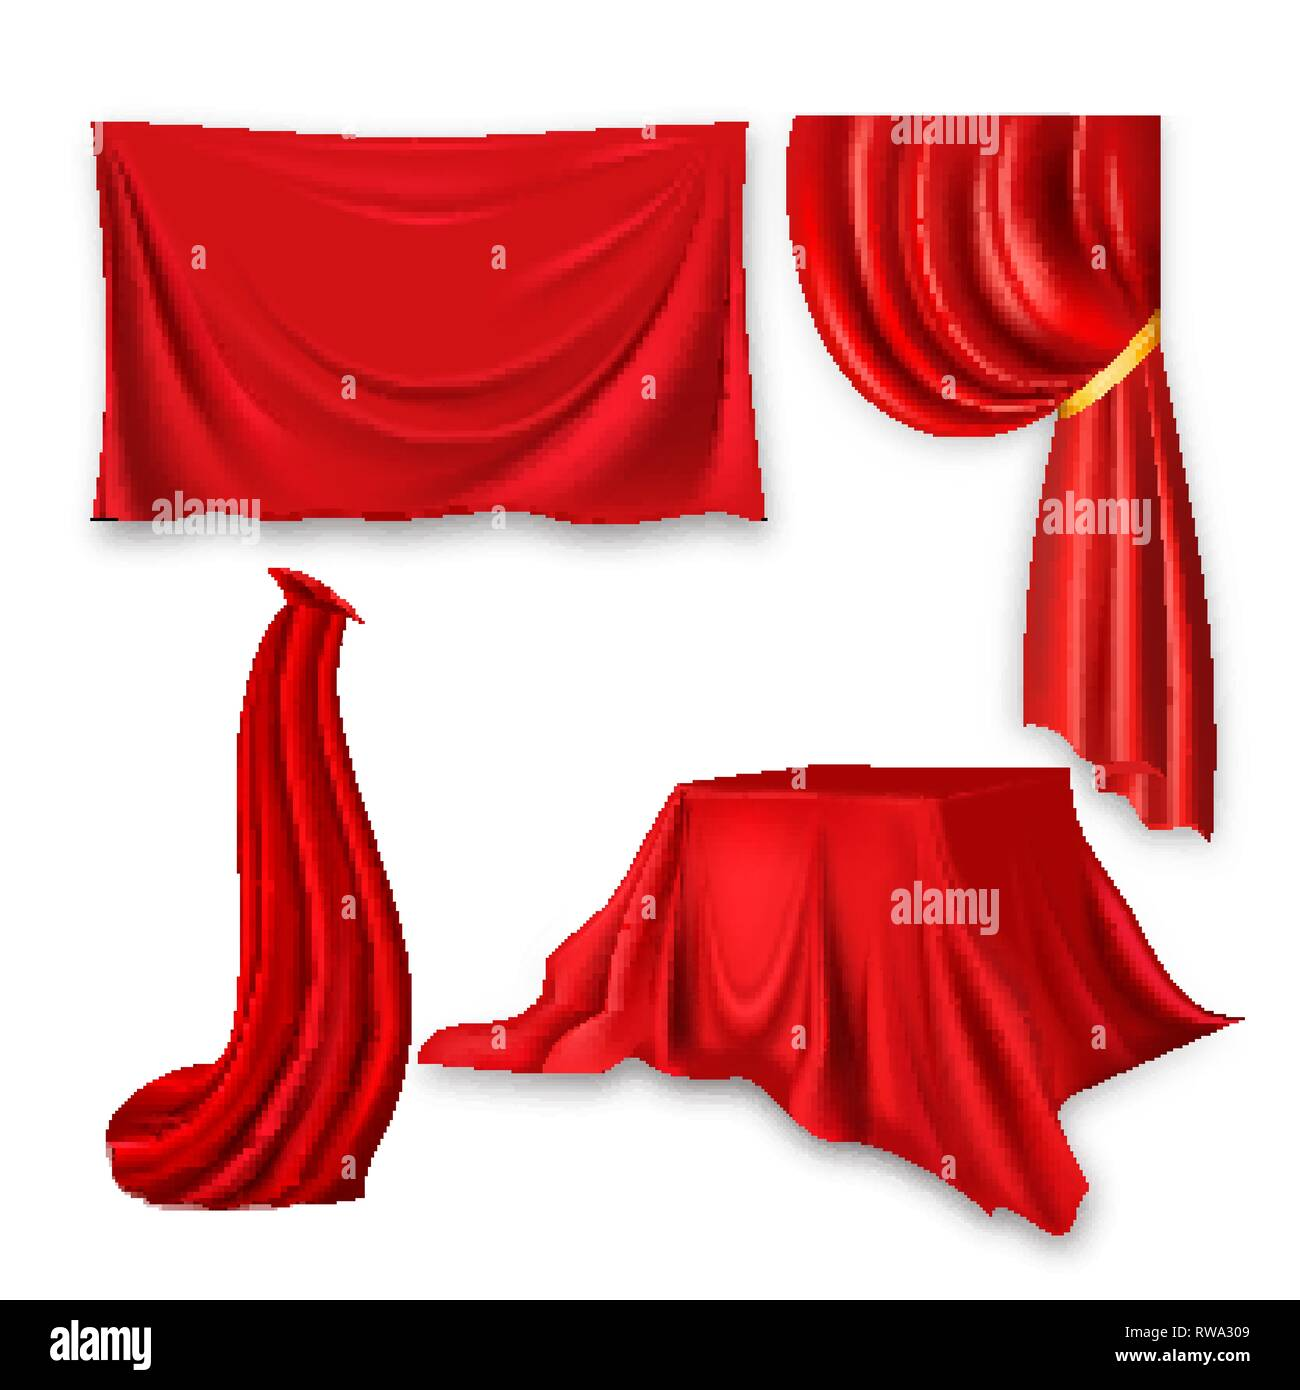 Red Silk Cloth Set Vector. Fabric Cloth Waving Shape. For Presentation. Banner, Stage, Cloak, Curtain. Velvet Theater Or Cinema Luxury Textile Drapery - Stock Vector